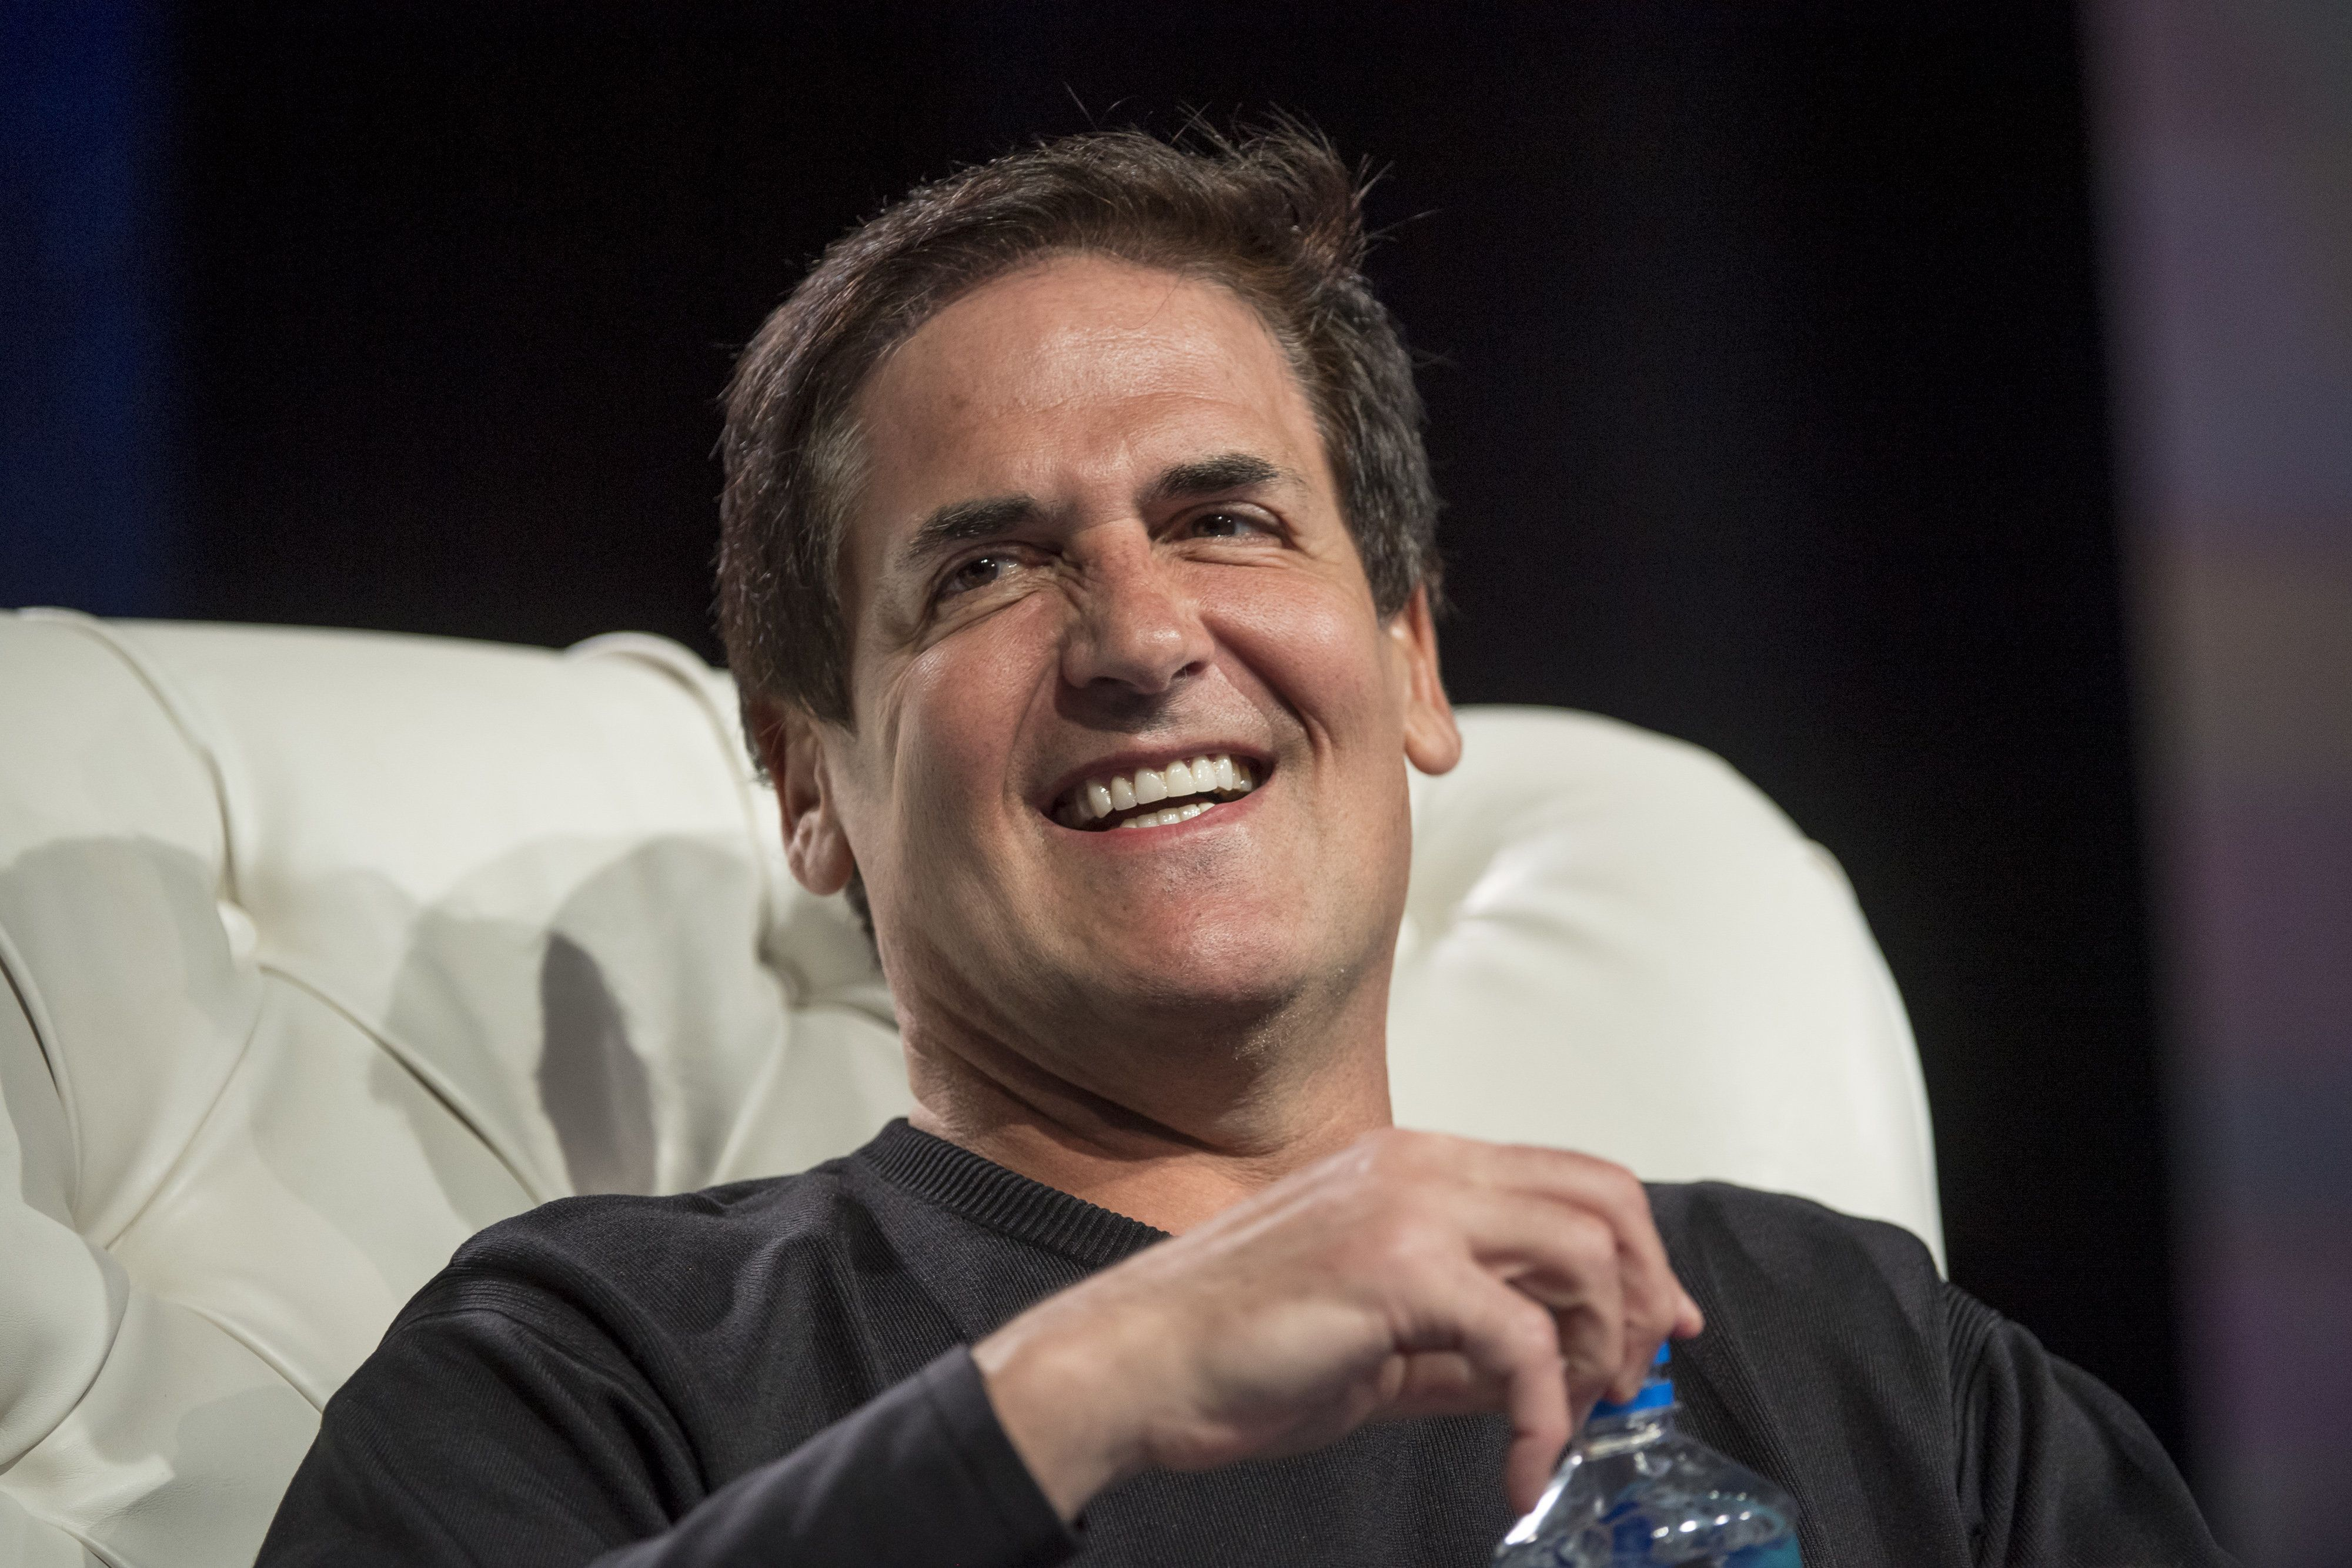 Mark Cuban, billionaire owner of the National Basketball Association (NBA) Dallas Mavericks basketball team, speaks during the Skybridge Alternatives (SALT) conference in Las Vegas, Nevada, U.S., on Thursday, May 12, 2016. The SALT Conference facilitates balanced discussions and debates on macroeconomic trends, geopolitical events, and alternative investment opportunities within the context of a dynamic global economy. Photographer: David Paul Morris/Bloomberg via Getty Images